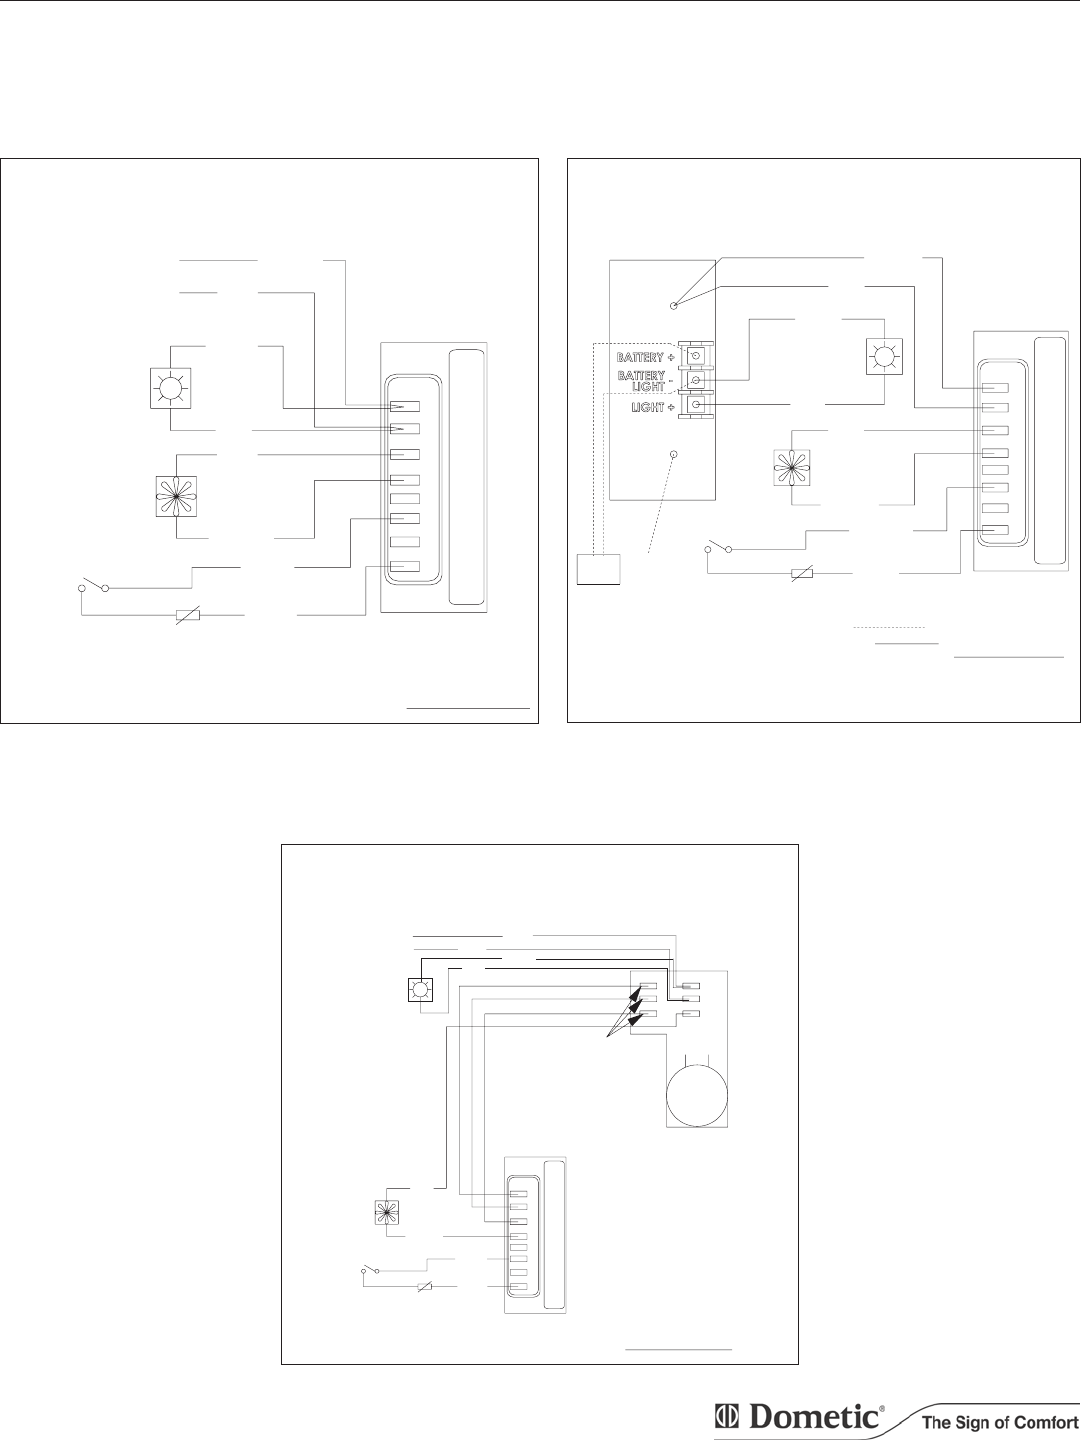 0d22967b 2c98 486f 8a31 eb6091f7d62e bg8 page 8 of dometic refrigerator tj80 user guide manualsonline com Danfoss VFD Wiring-Diagram at mifinder.co